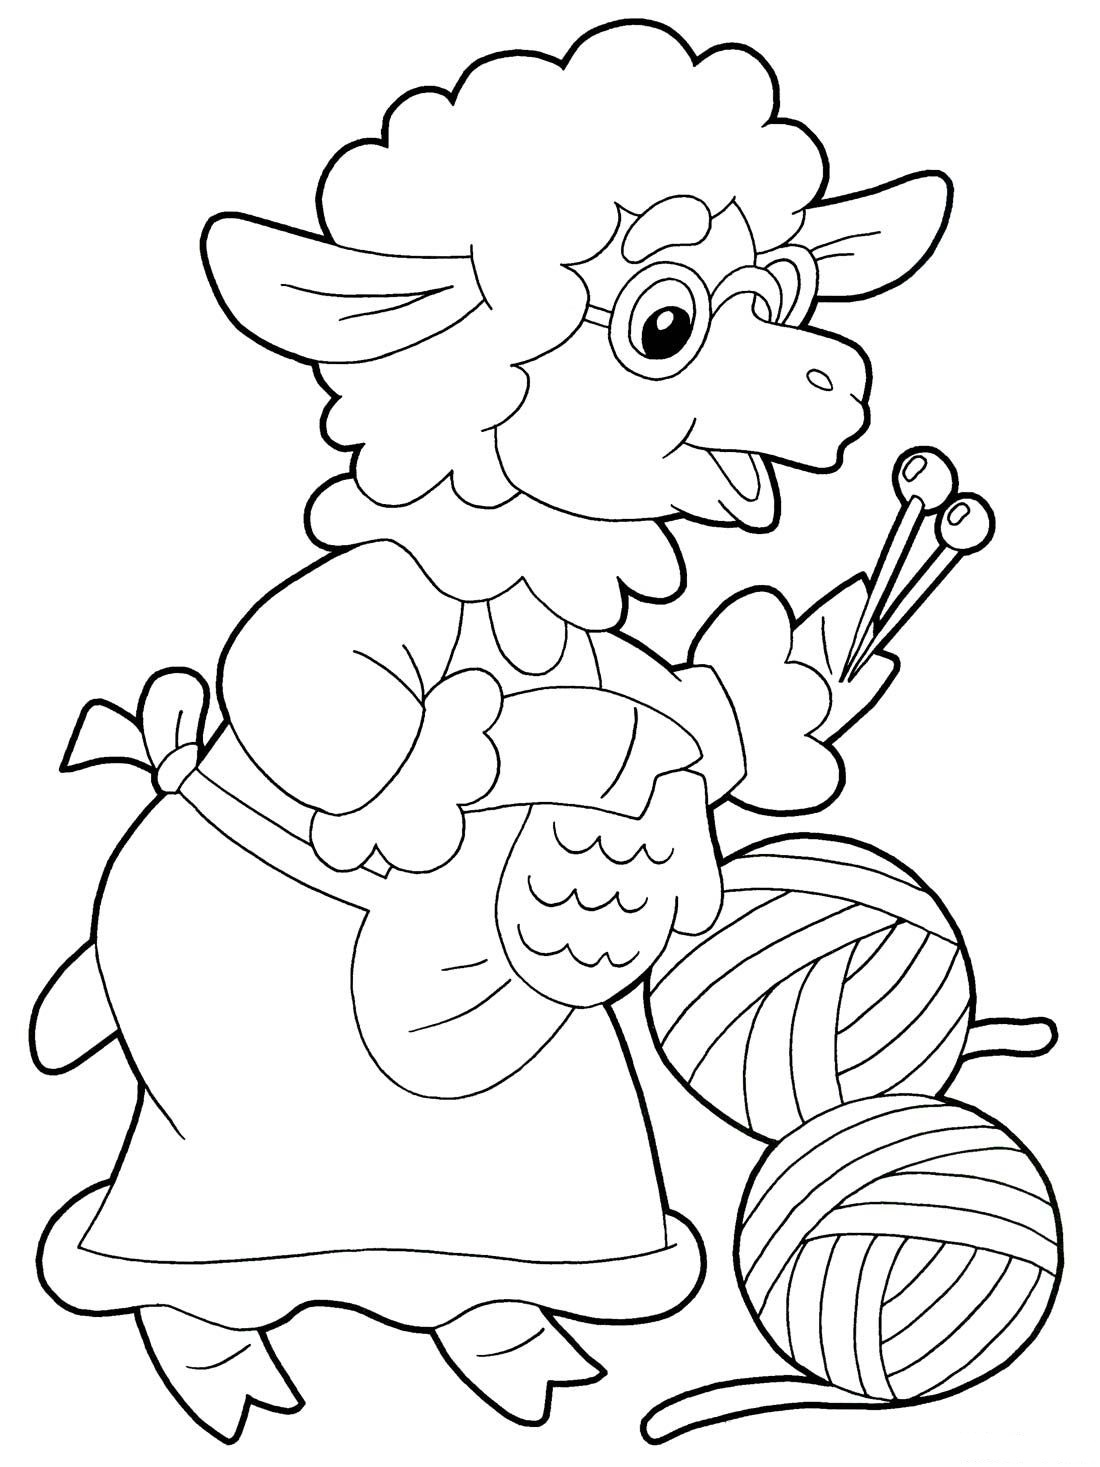 colored pages free oranges coloring pages learn to coloring colored pages